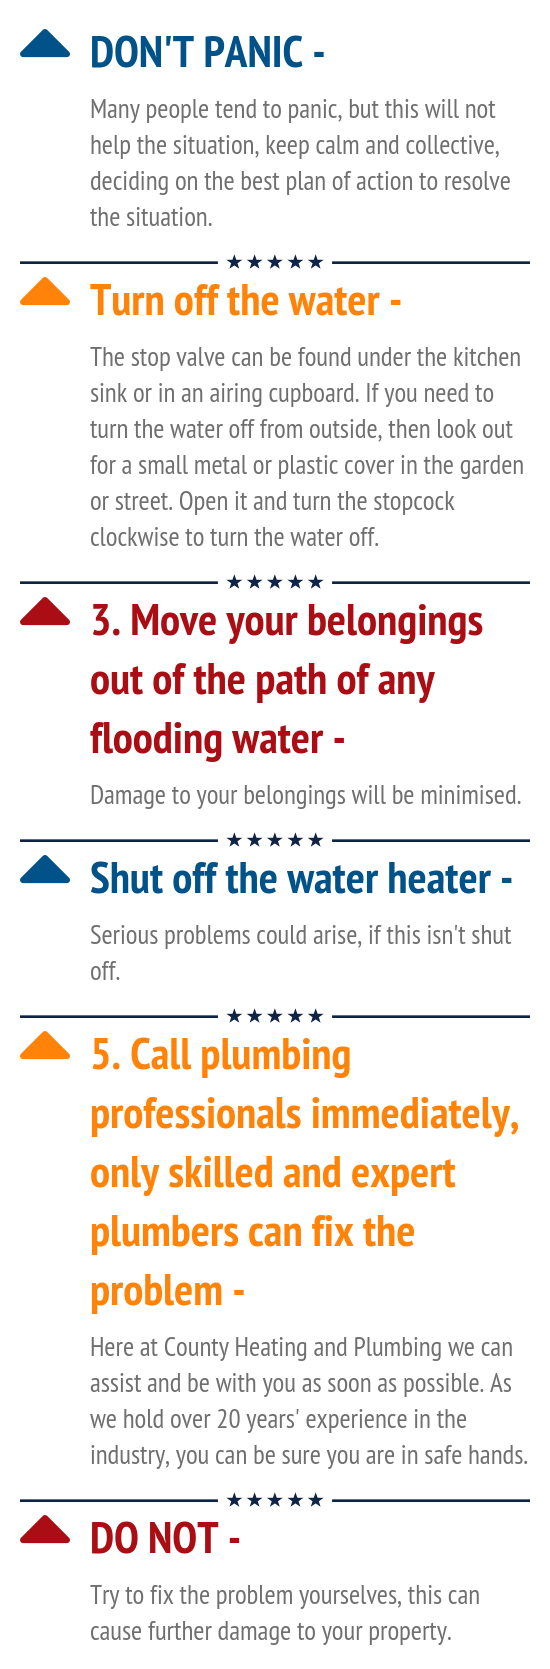 County Heating and Plumbing Ltd - Infographic